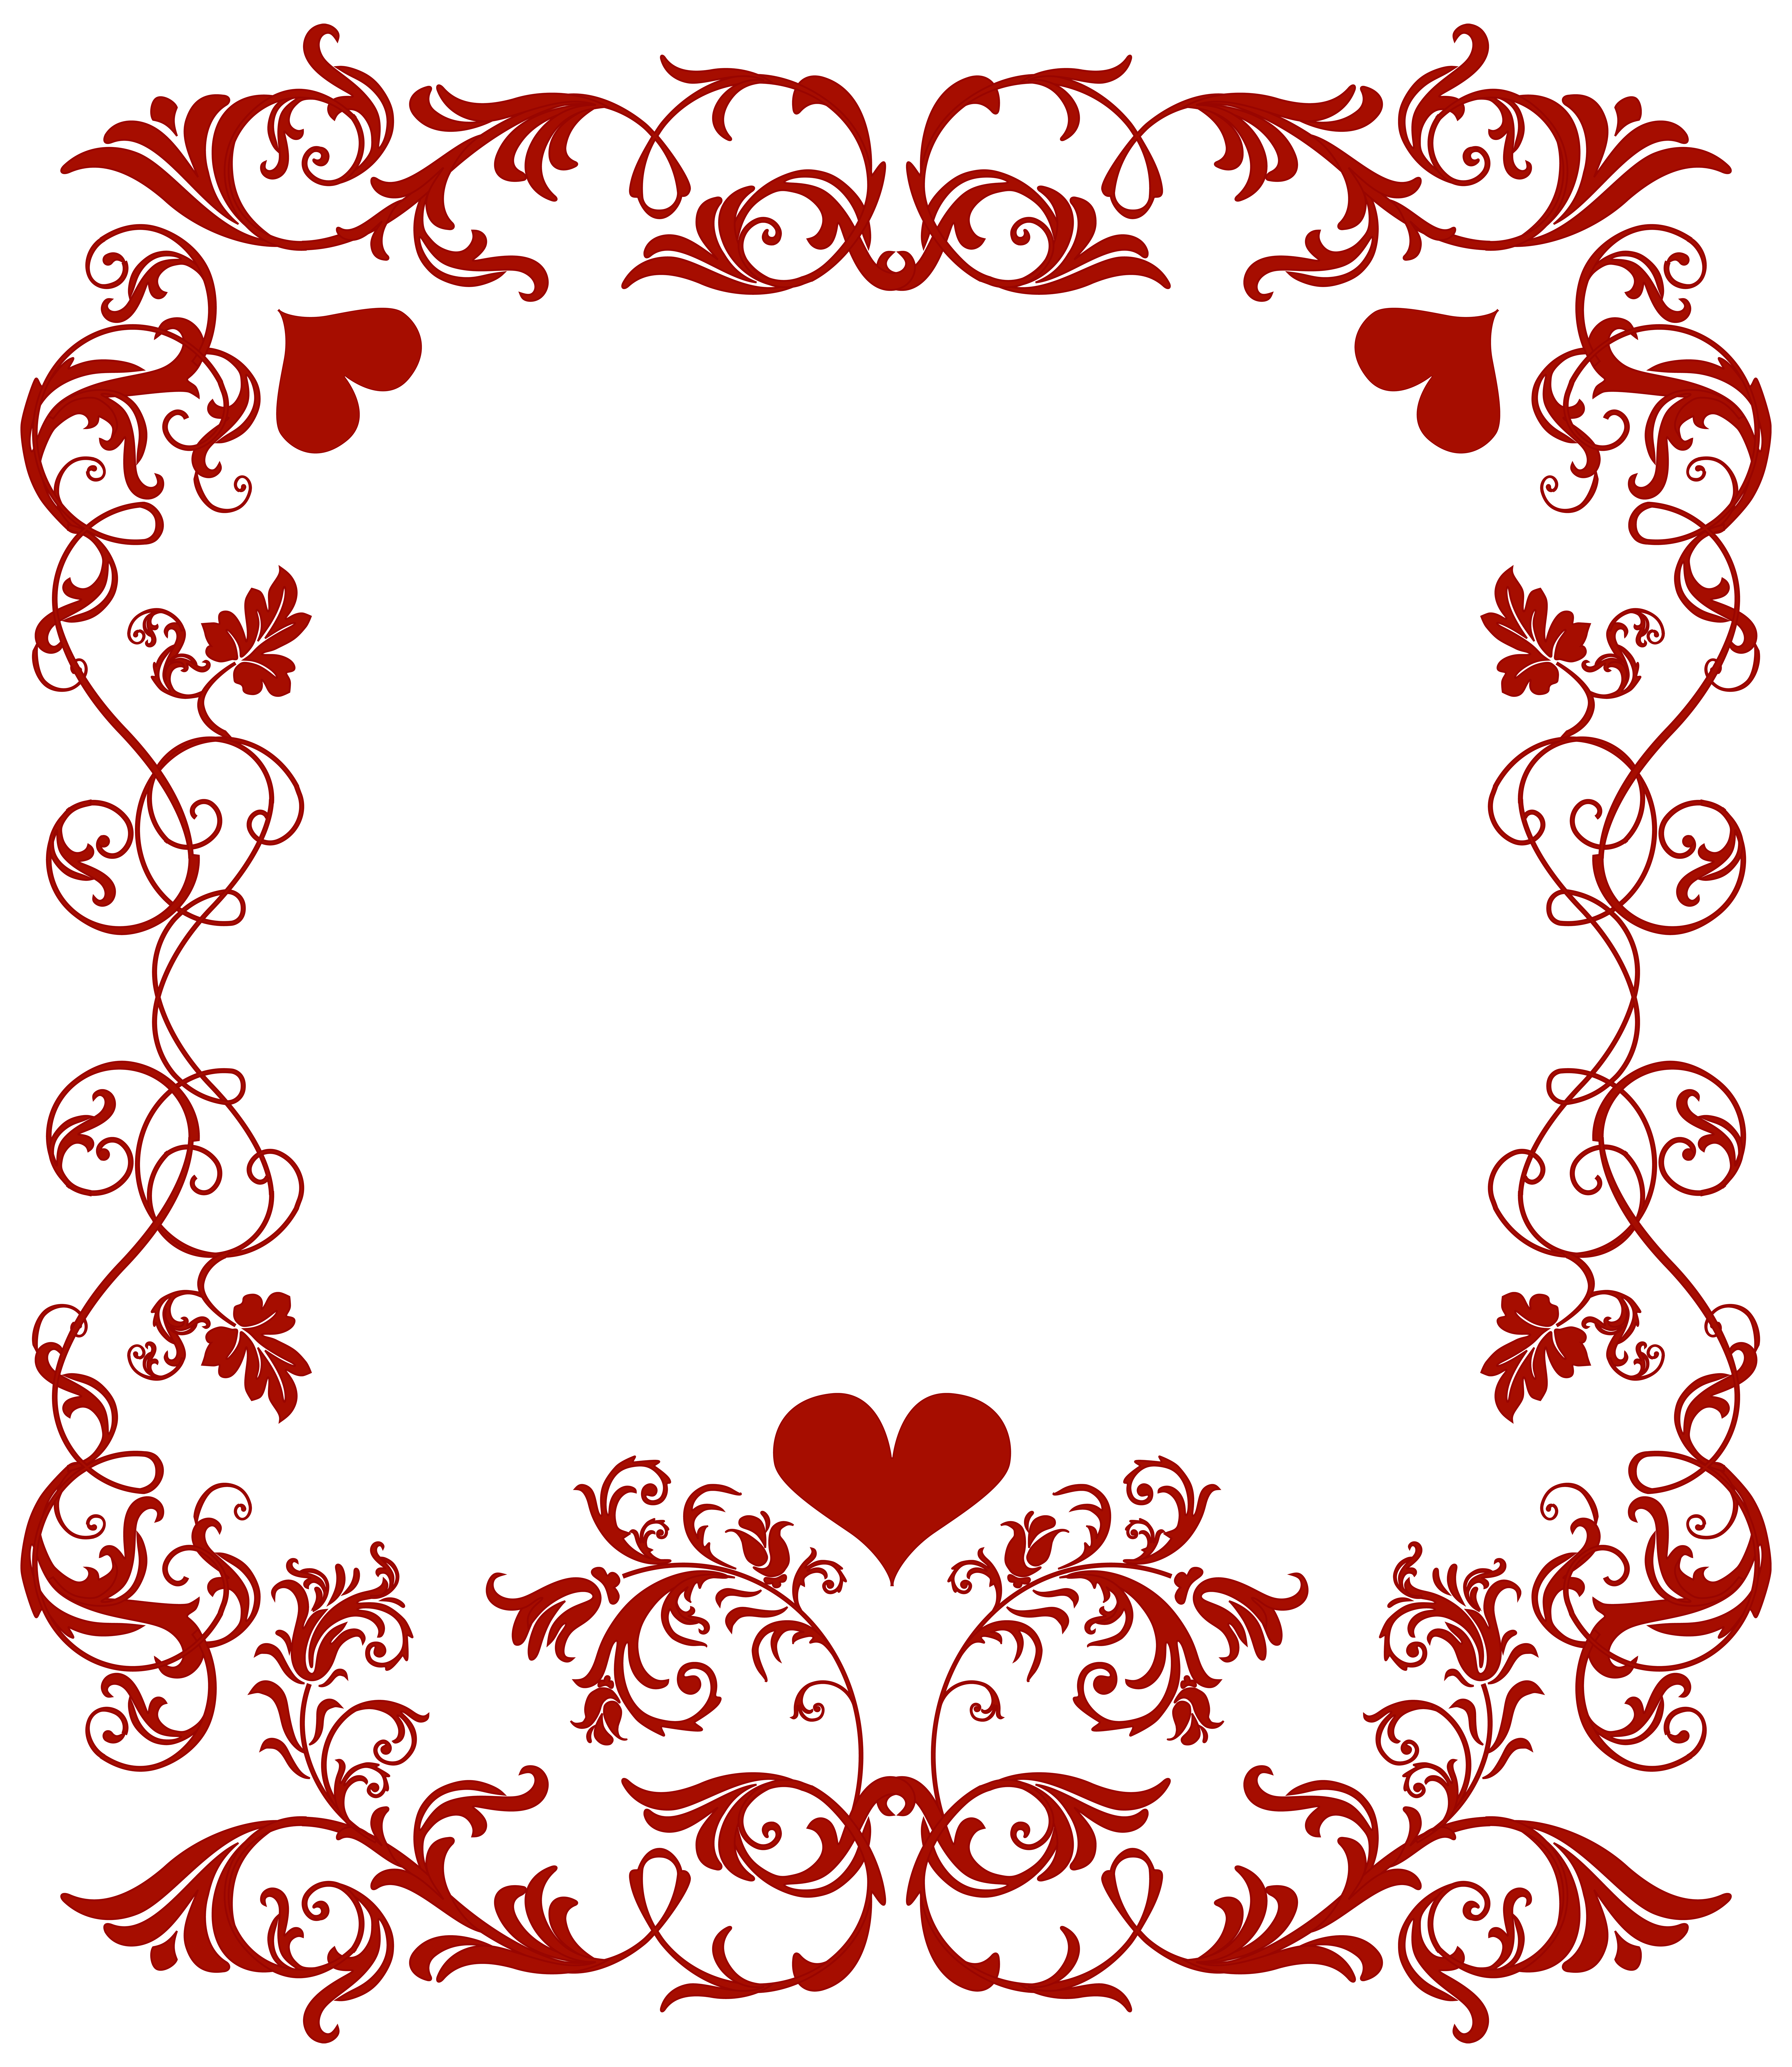 png freeuse Valentines border clipart. Valentine s day decorative